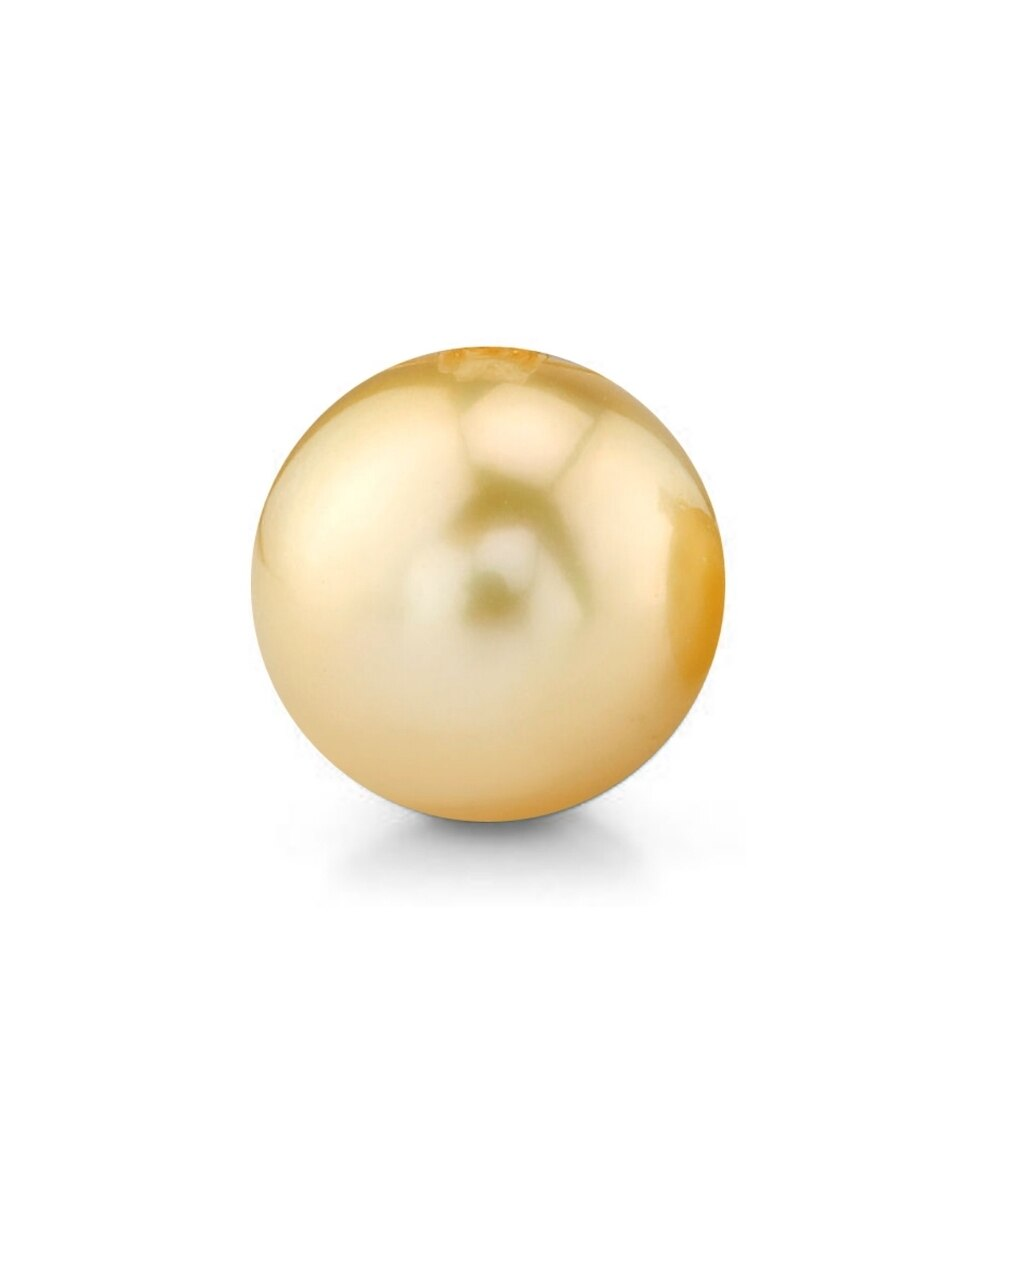 This loose Gold South Sea pearl is 9.0mm in size